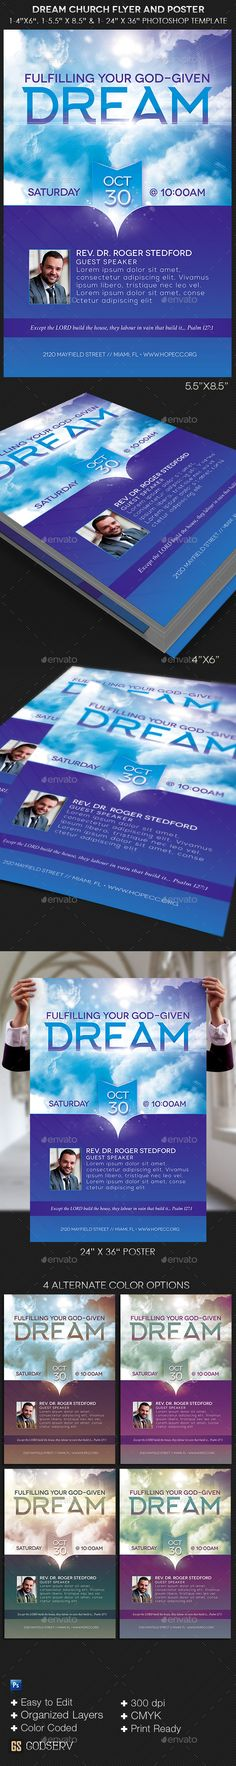 Sunday Barbecue Flyer Template  Church Print Templates